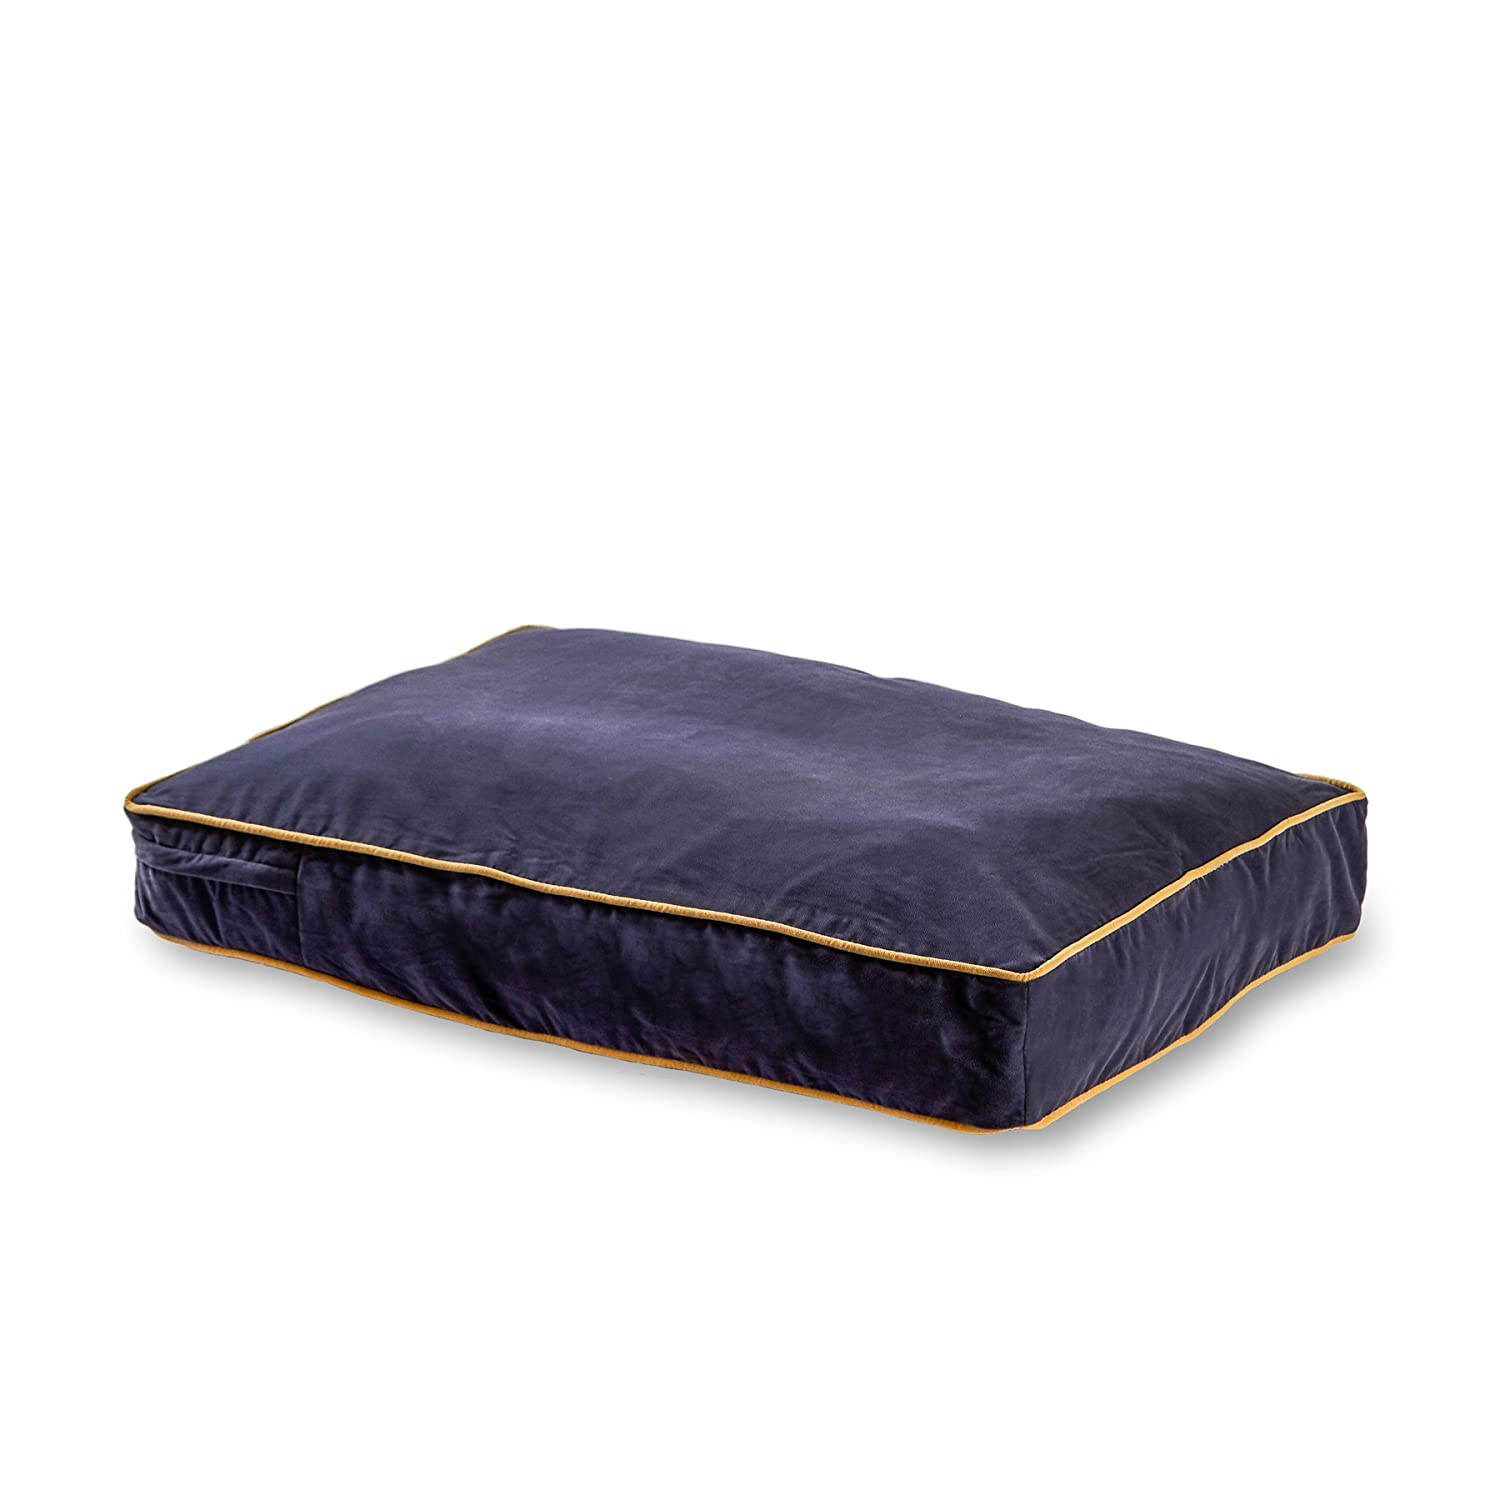 Happy Hounds Buster Dog Bed, 18 by 24-Inch Extra Small, Denim bluee